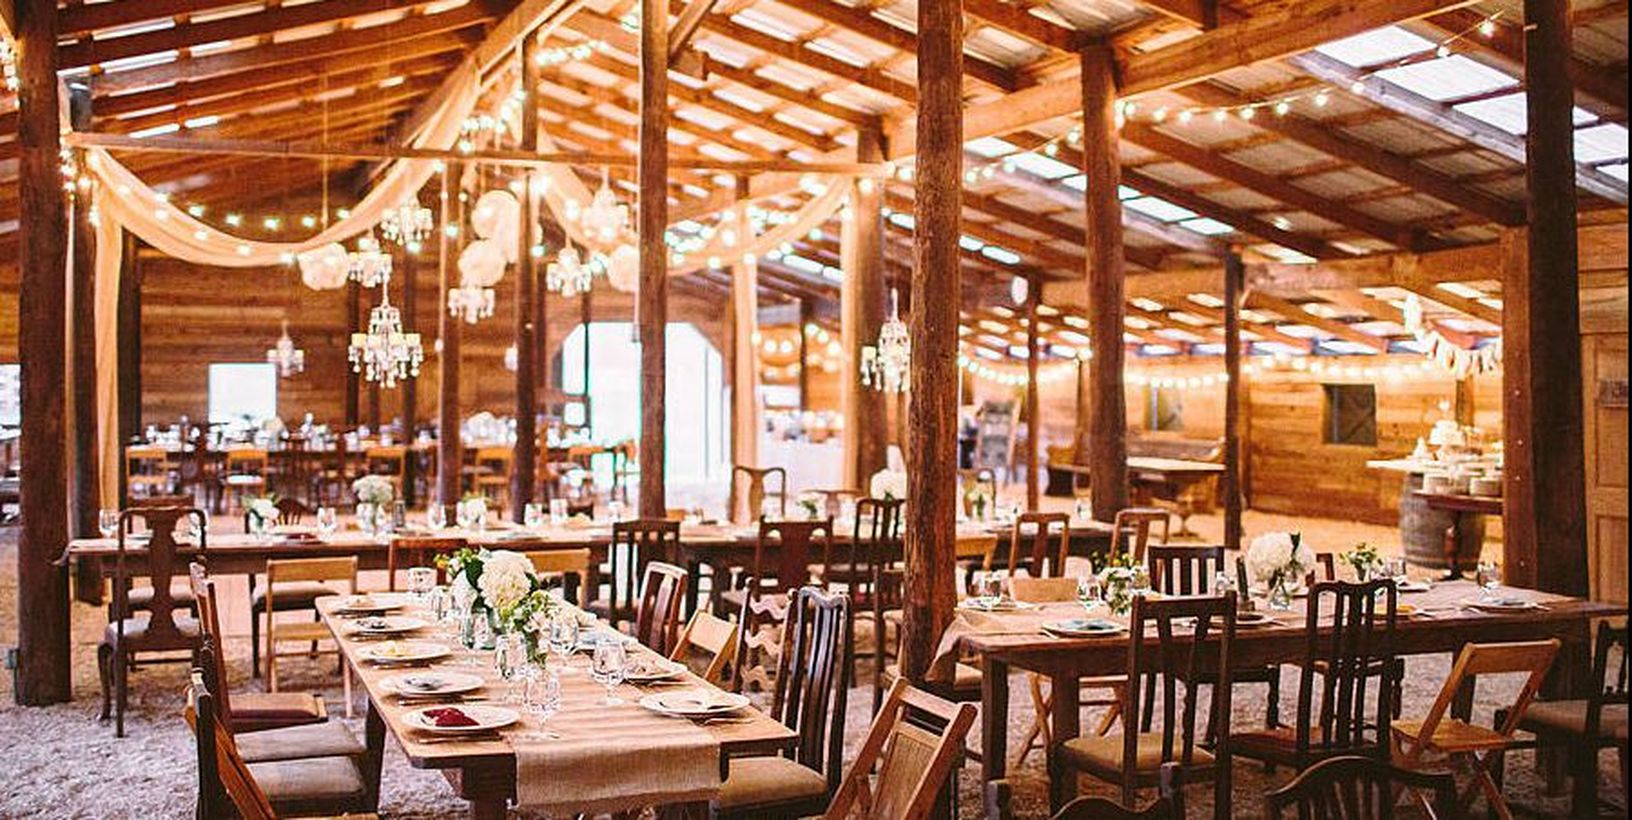 An amazing indoor venue for fall wedding with classic southern chic a fantastic blank canvas, for your dream wedding.